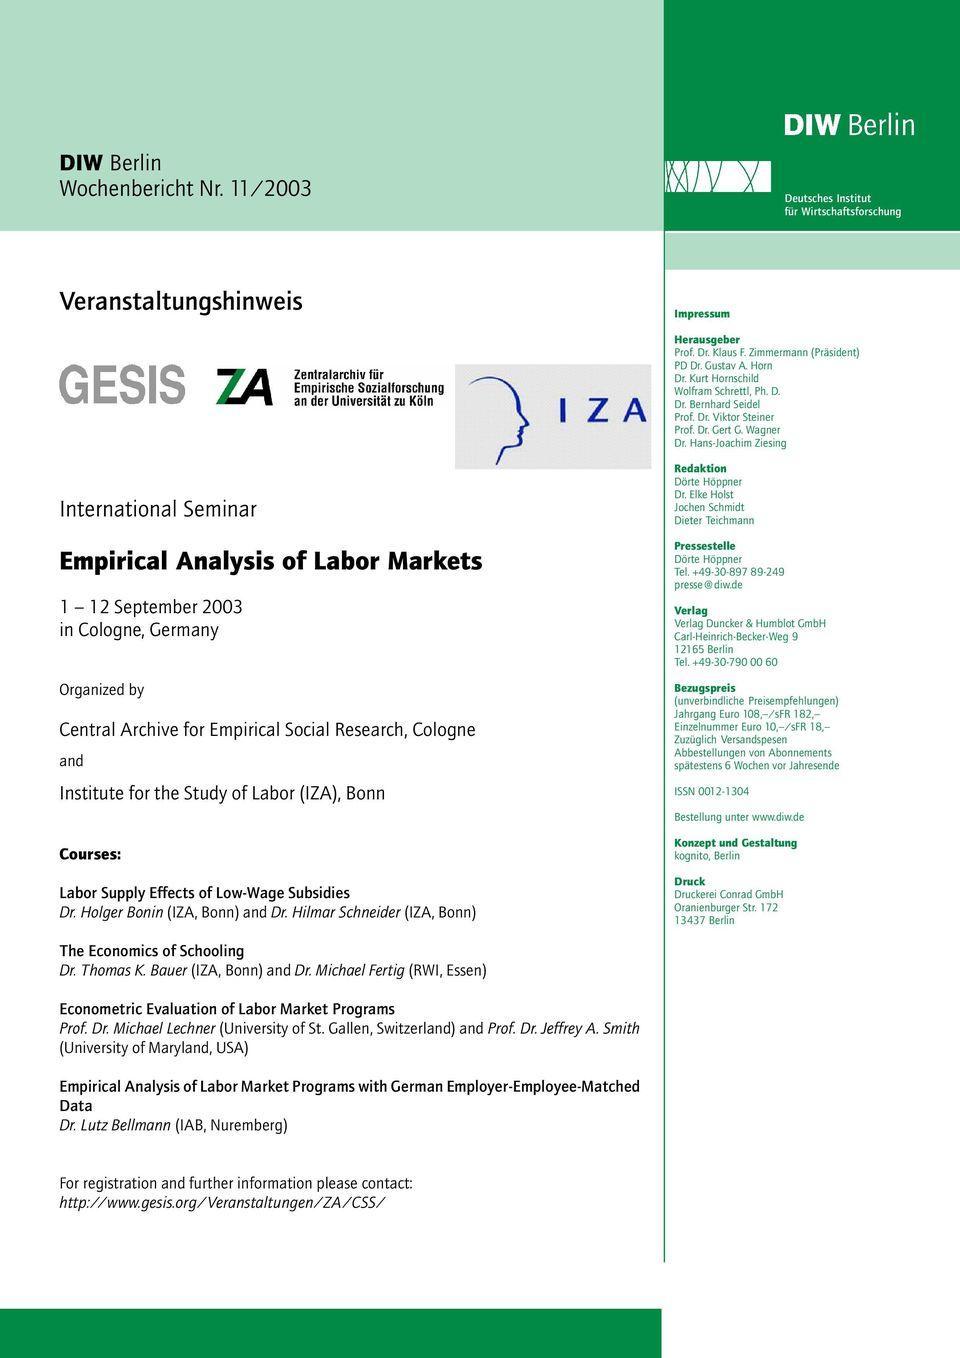 Hans-Joachim Ziesing International Seminar Empirical Analysis of Labor Markets 1 12 September 2003 in Cologne, Germany Organized by Central Archive for Empirical Social Research, Cologne and